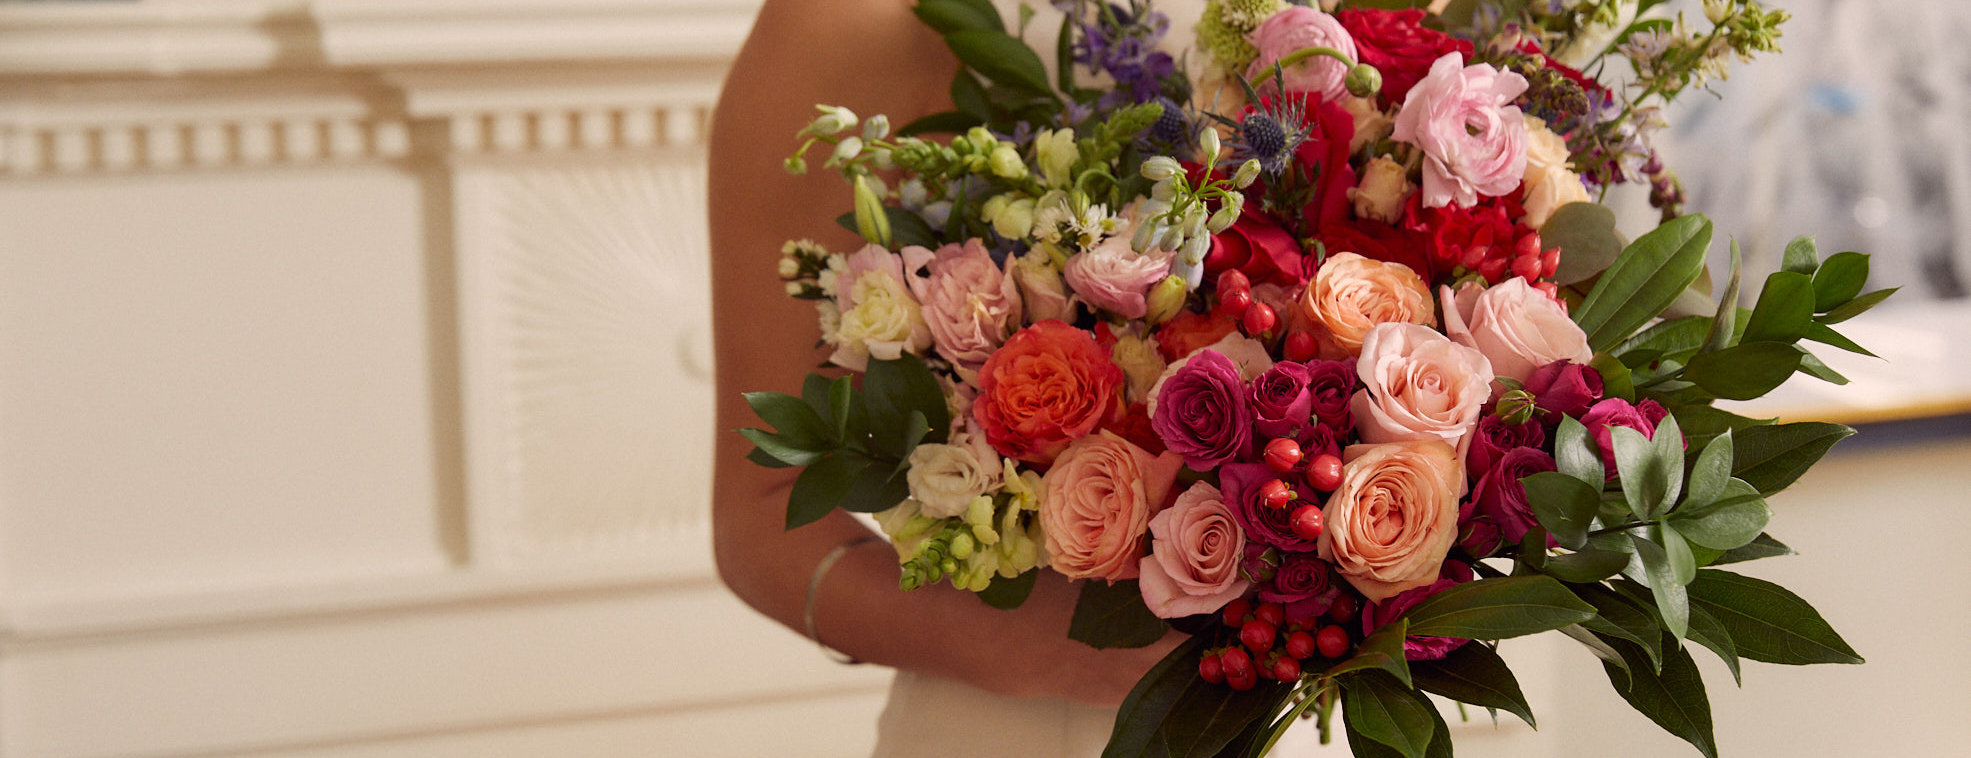 Bride holding wedding flowers in unique fall colors